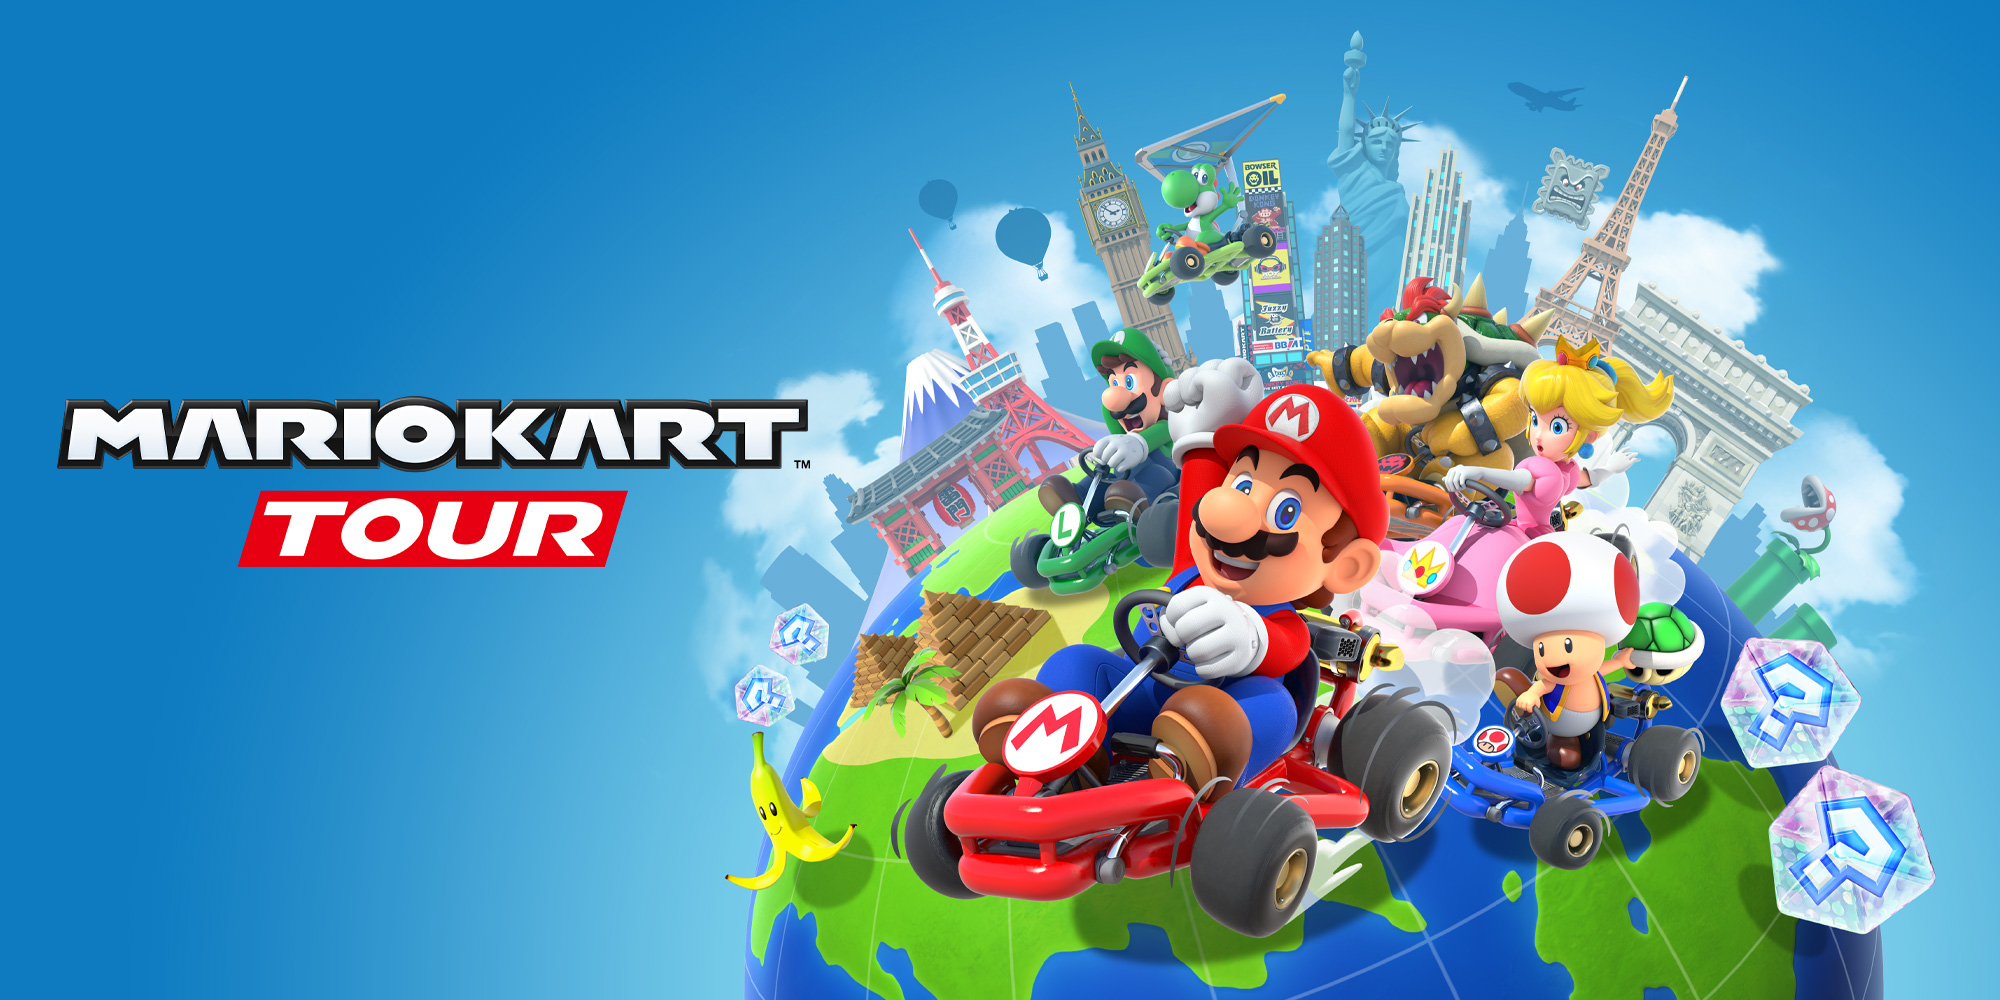 Get ready for Mario Kart Tour on September 25th!